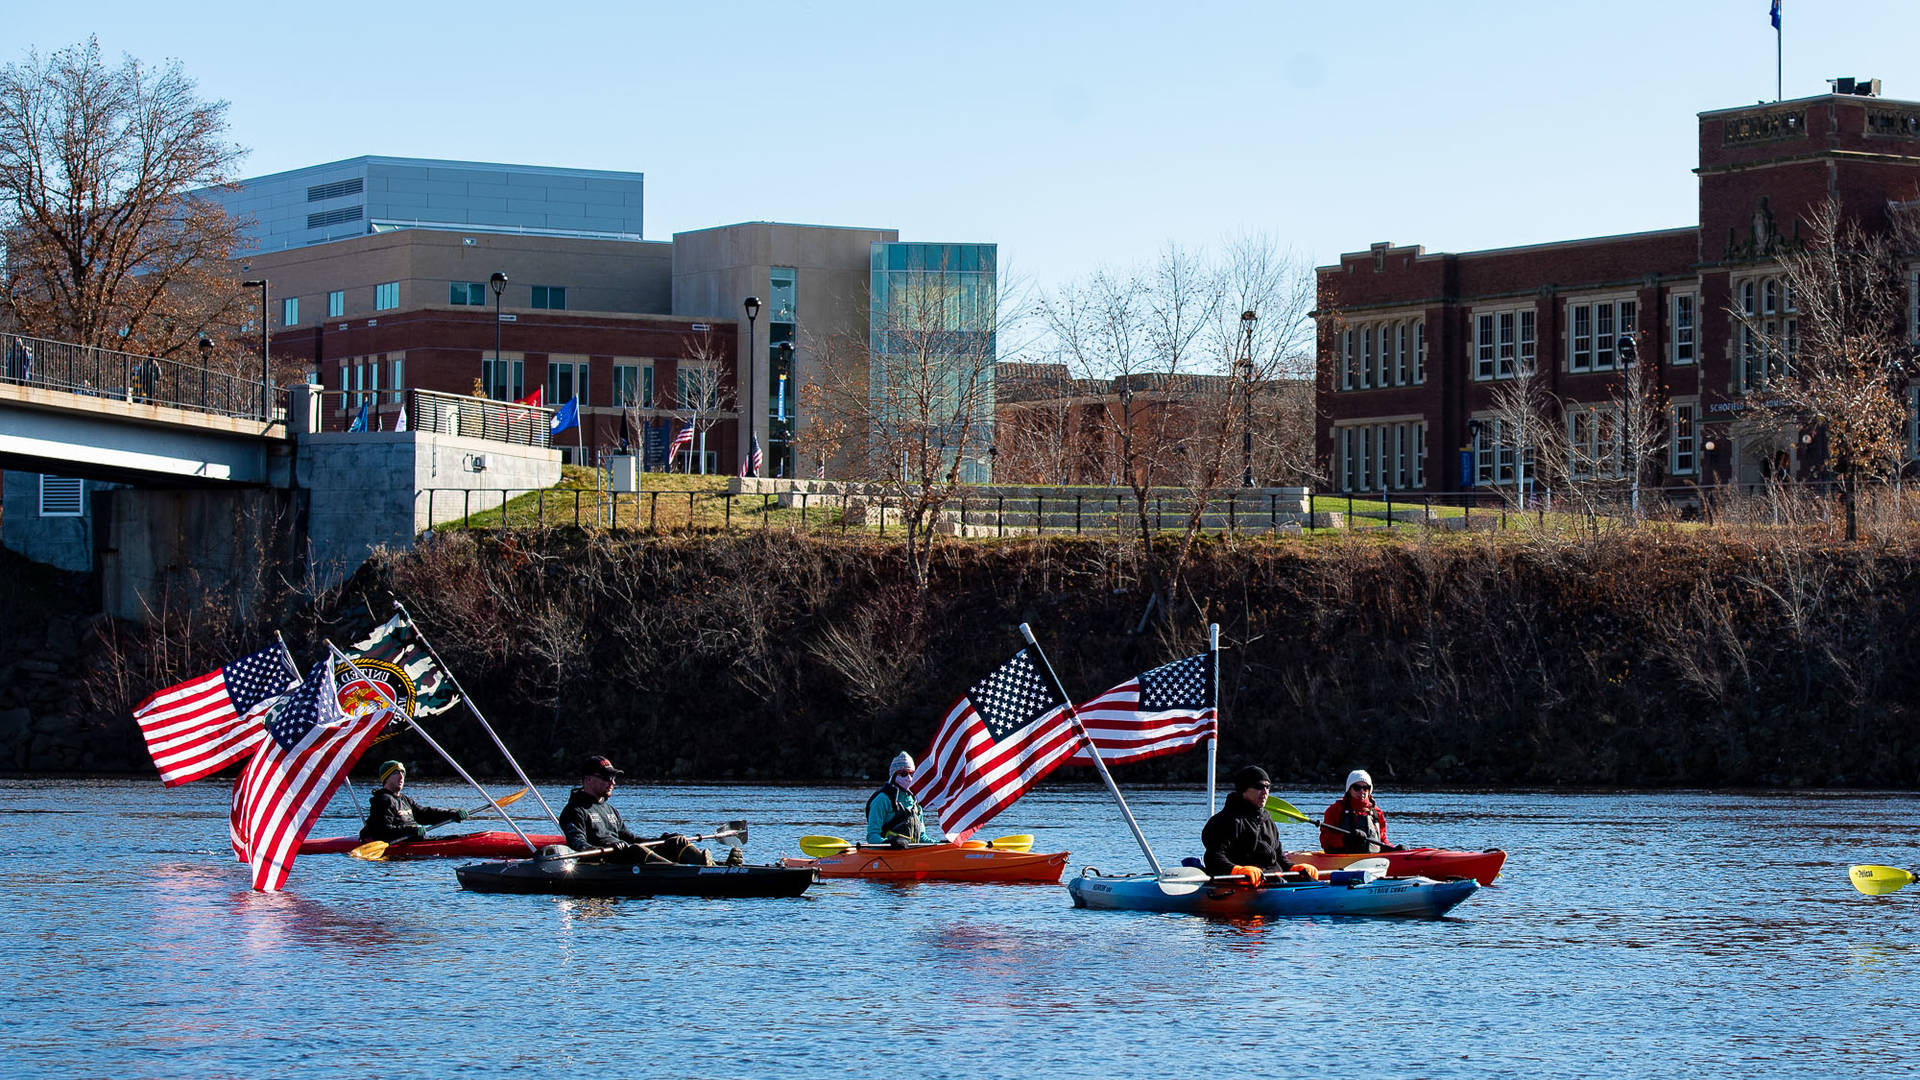 Boats with American flags on Chippewa River